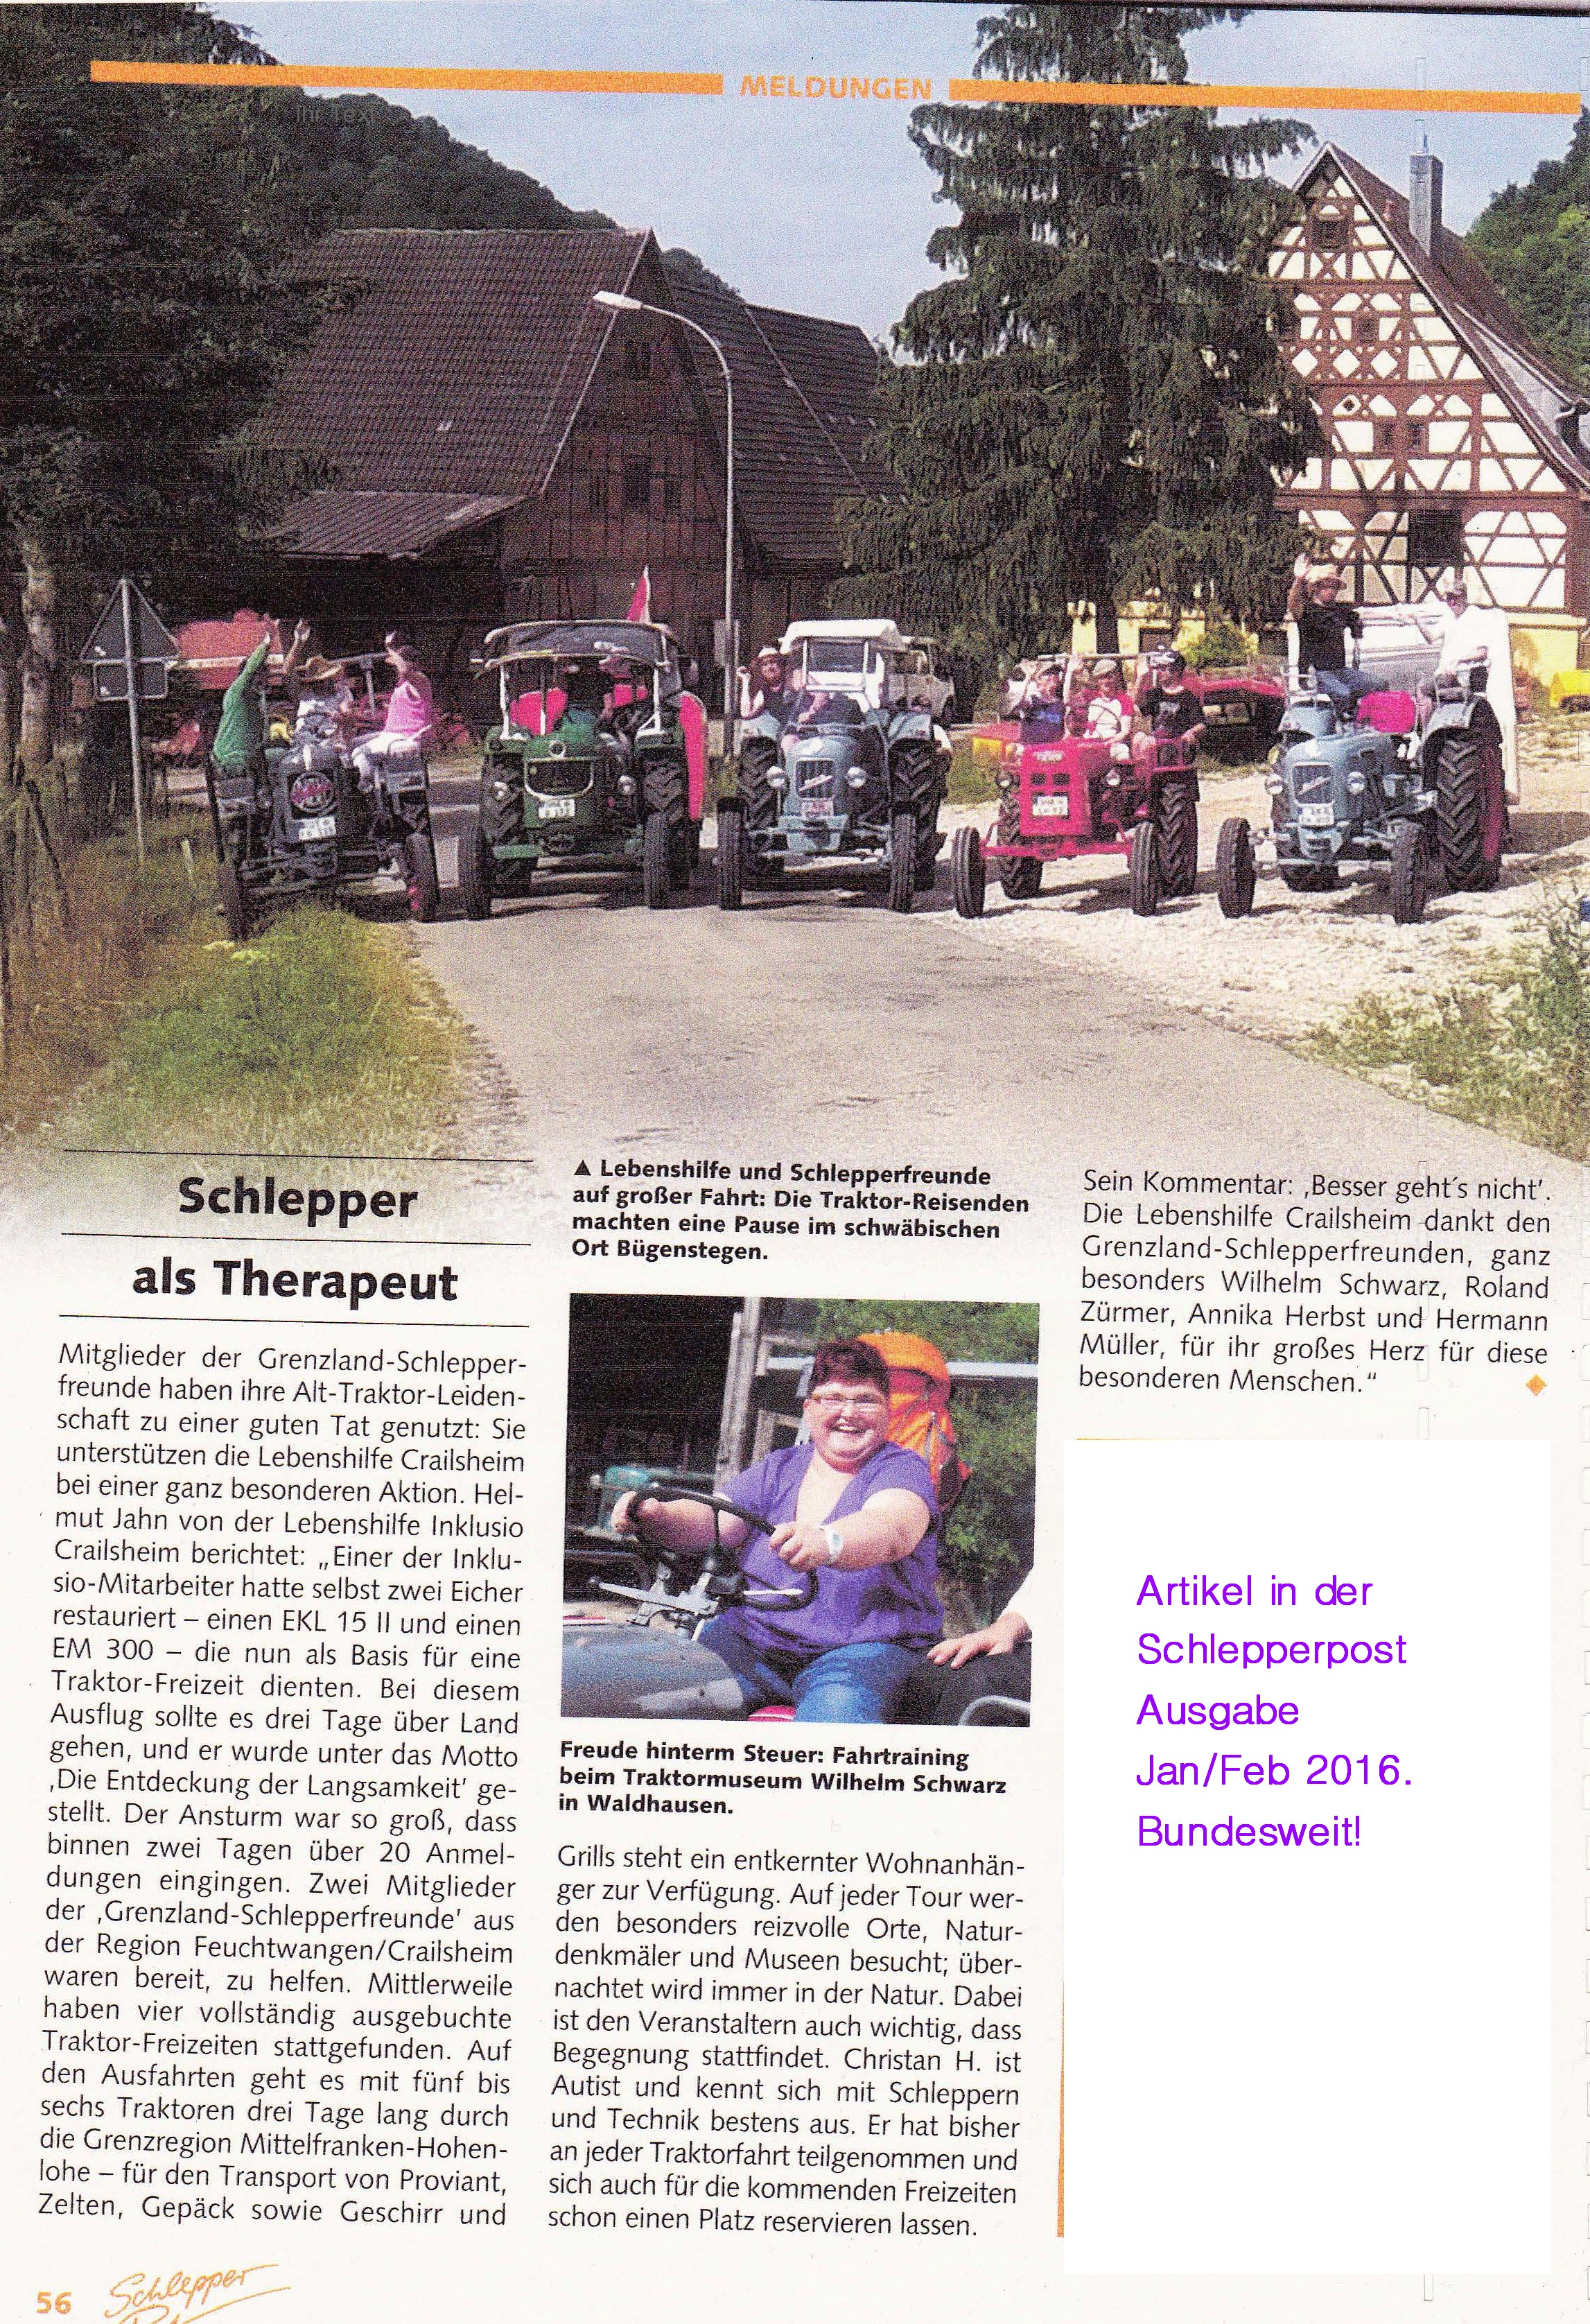 Schlepperpost 2015-1.jpg - 3.31 MB